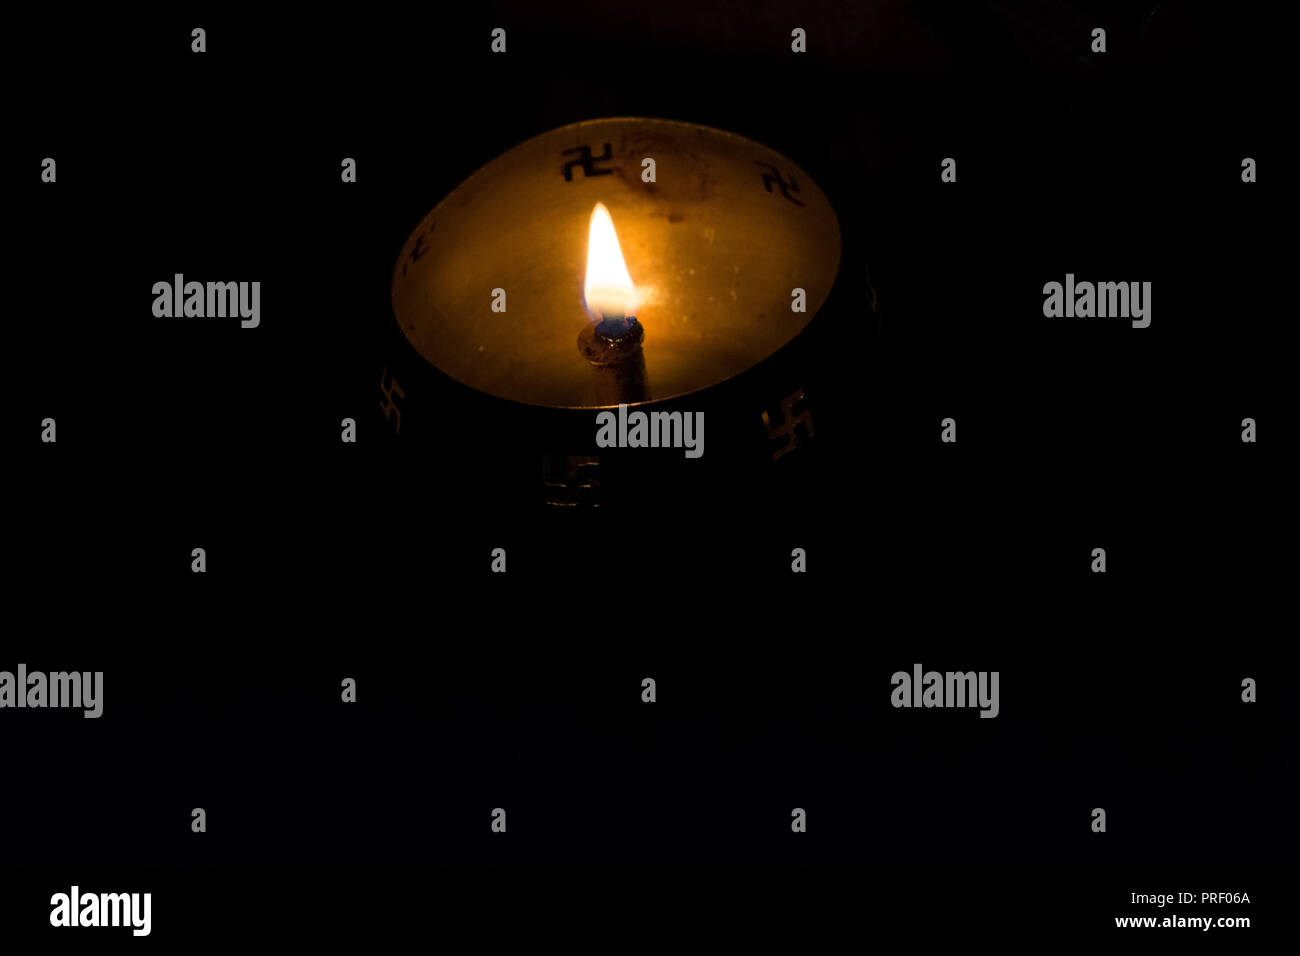 Flame of oil lamp on dark background, a burning oil lamp in darkness, with copy space. concept of removing darkness with a flame, are common in india  - Stock Image